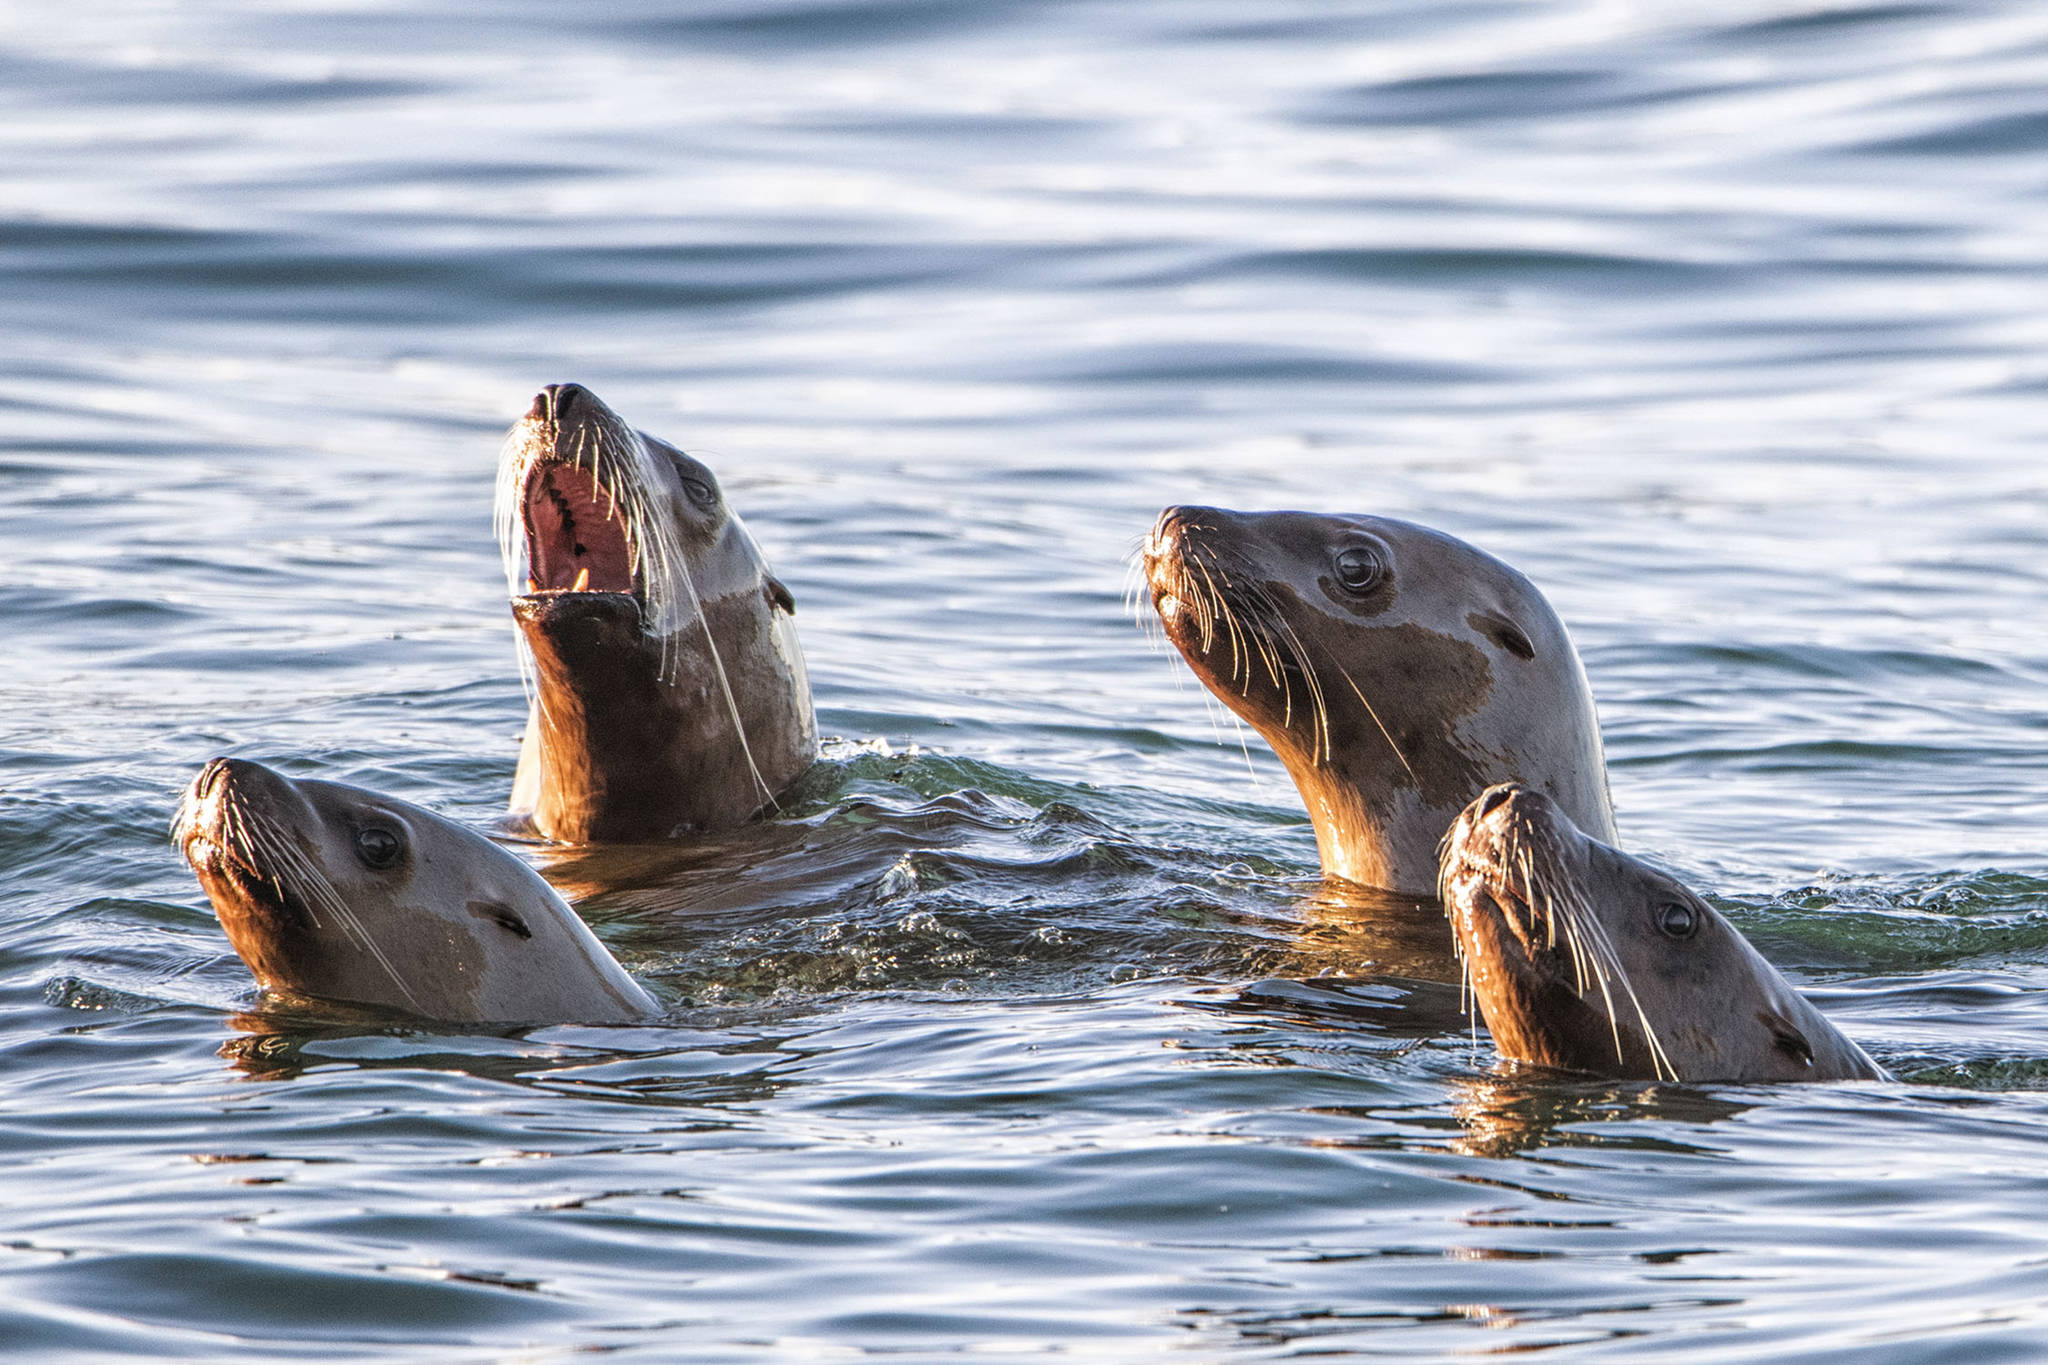 A quartet of Sea Lions off Point Louisa poke their heads above the water on Jan. 27. (Courtesy Photo / Kenneth Gill, gillfoto)